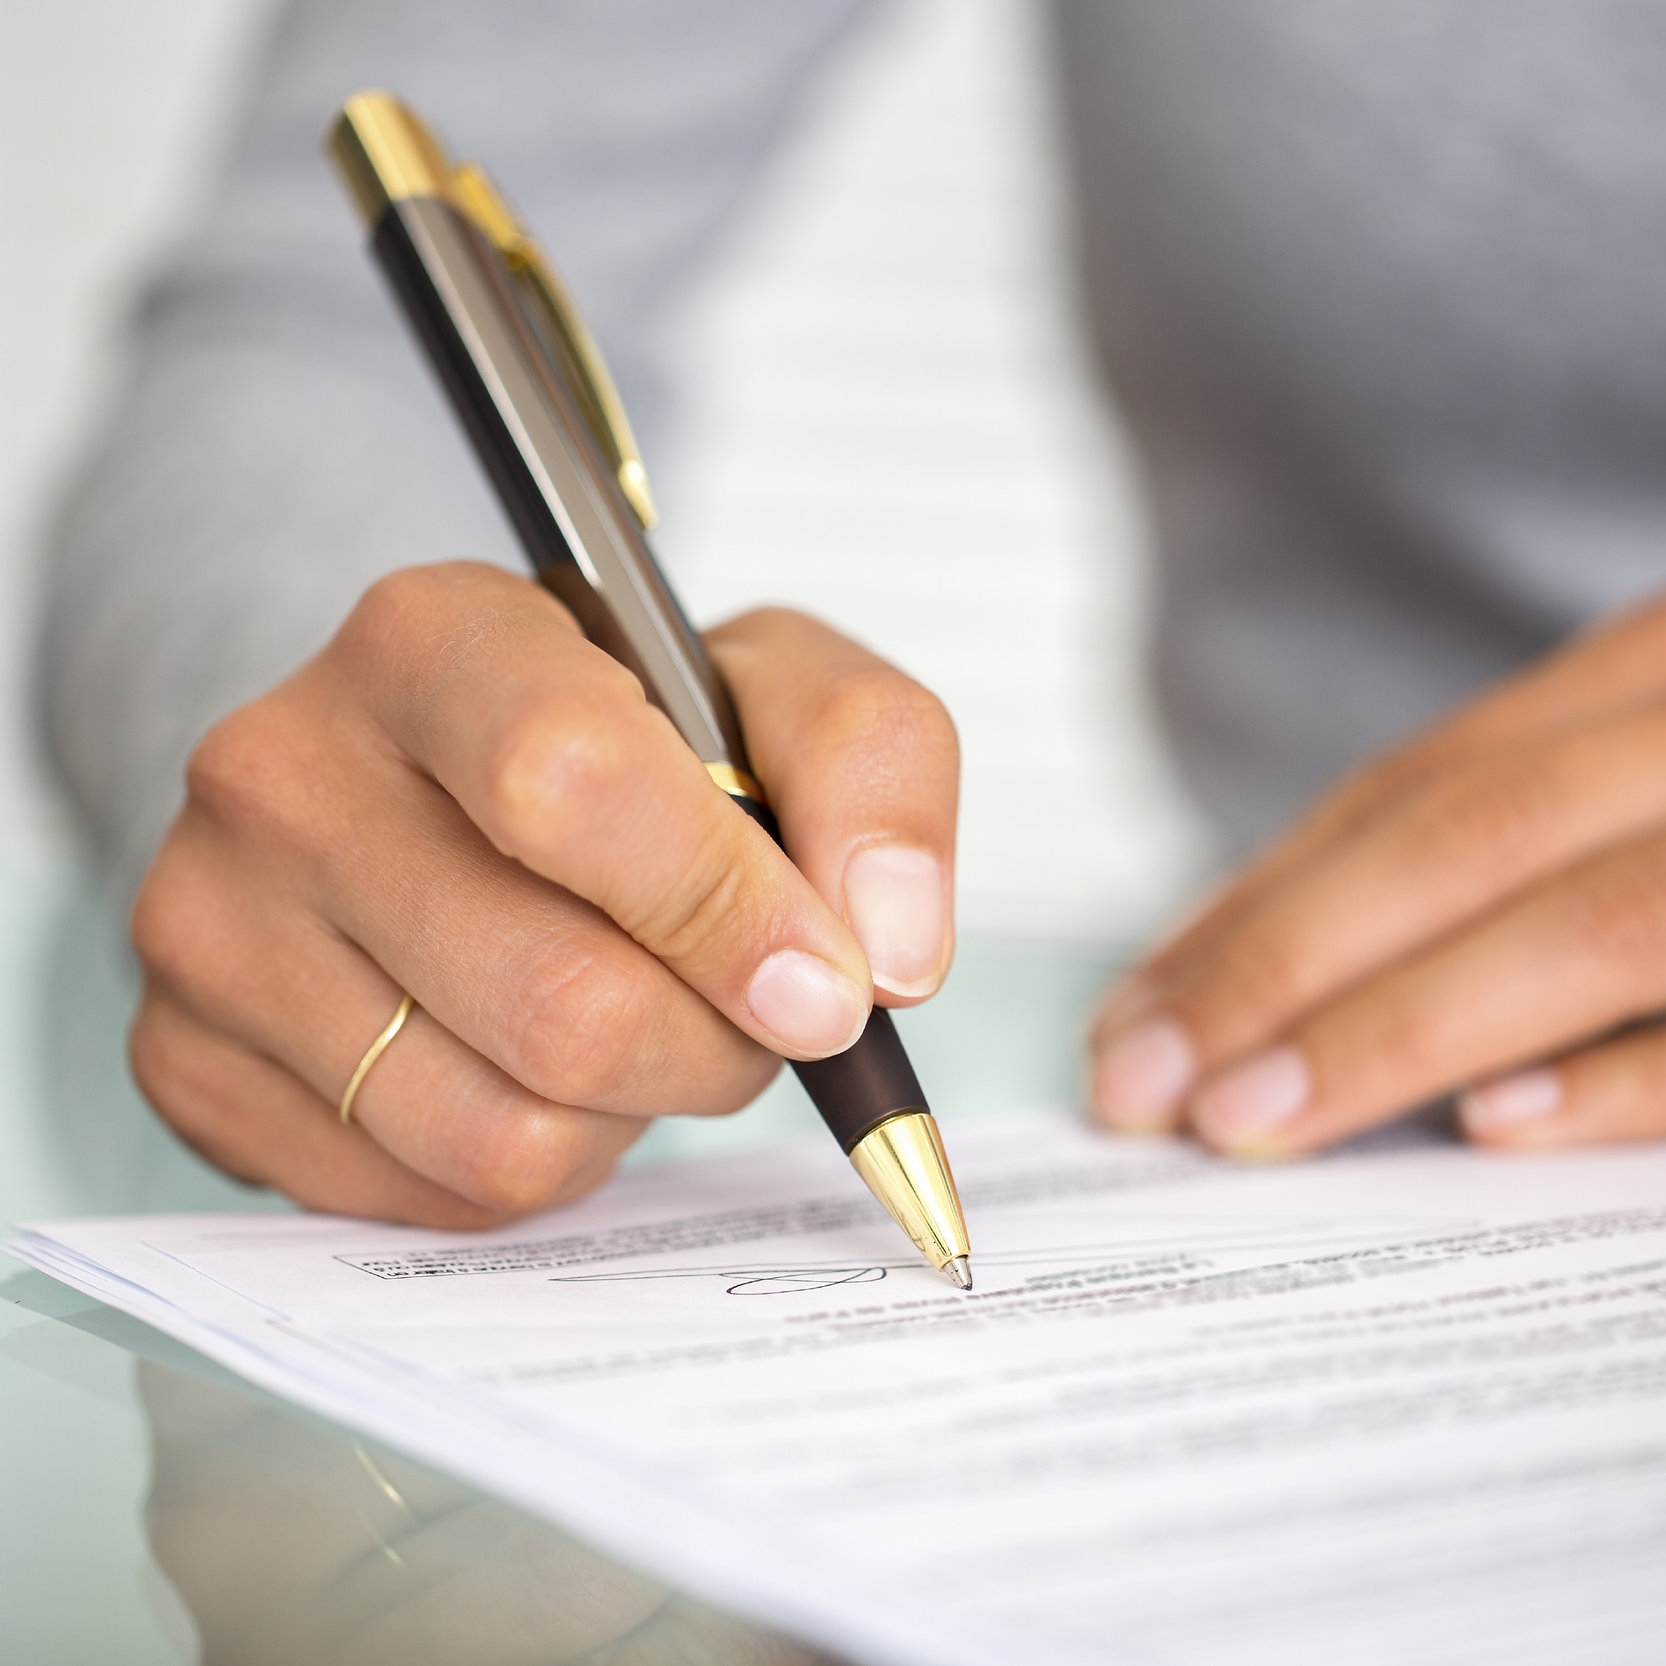 Signing-contract-pen-hand.jpg